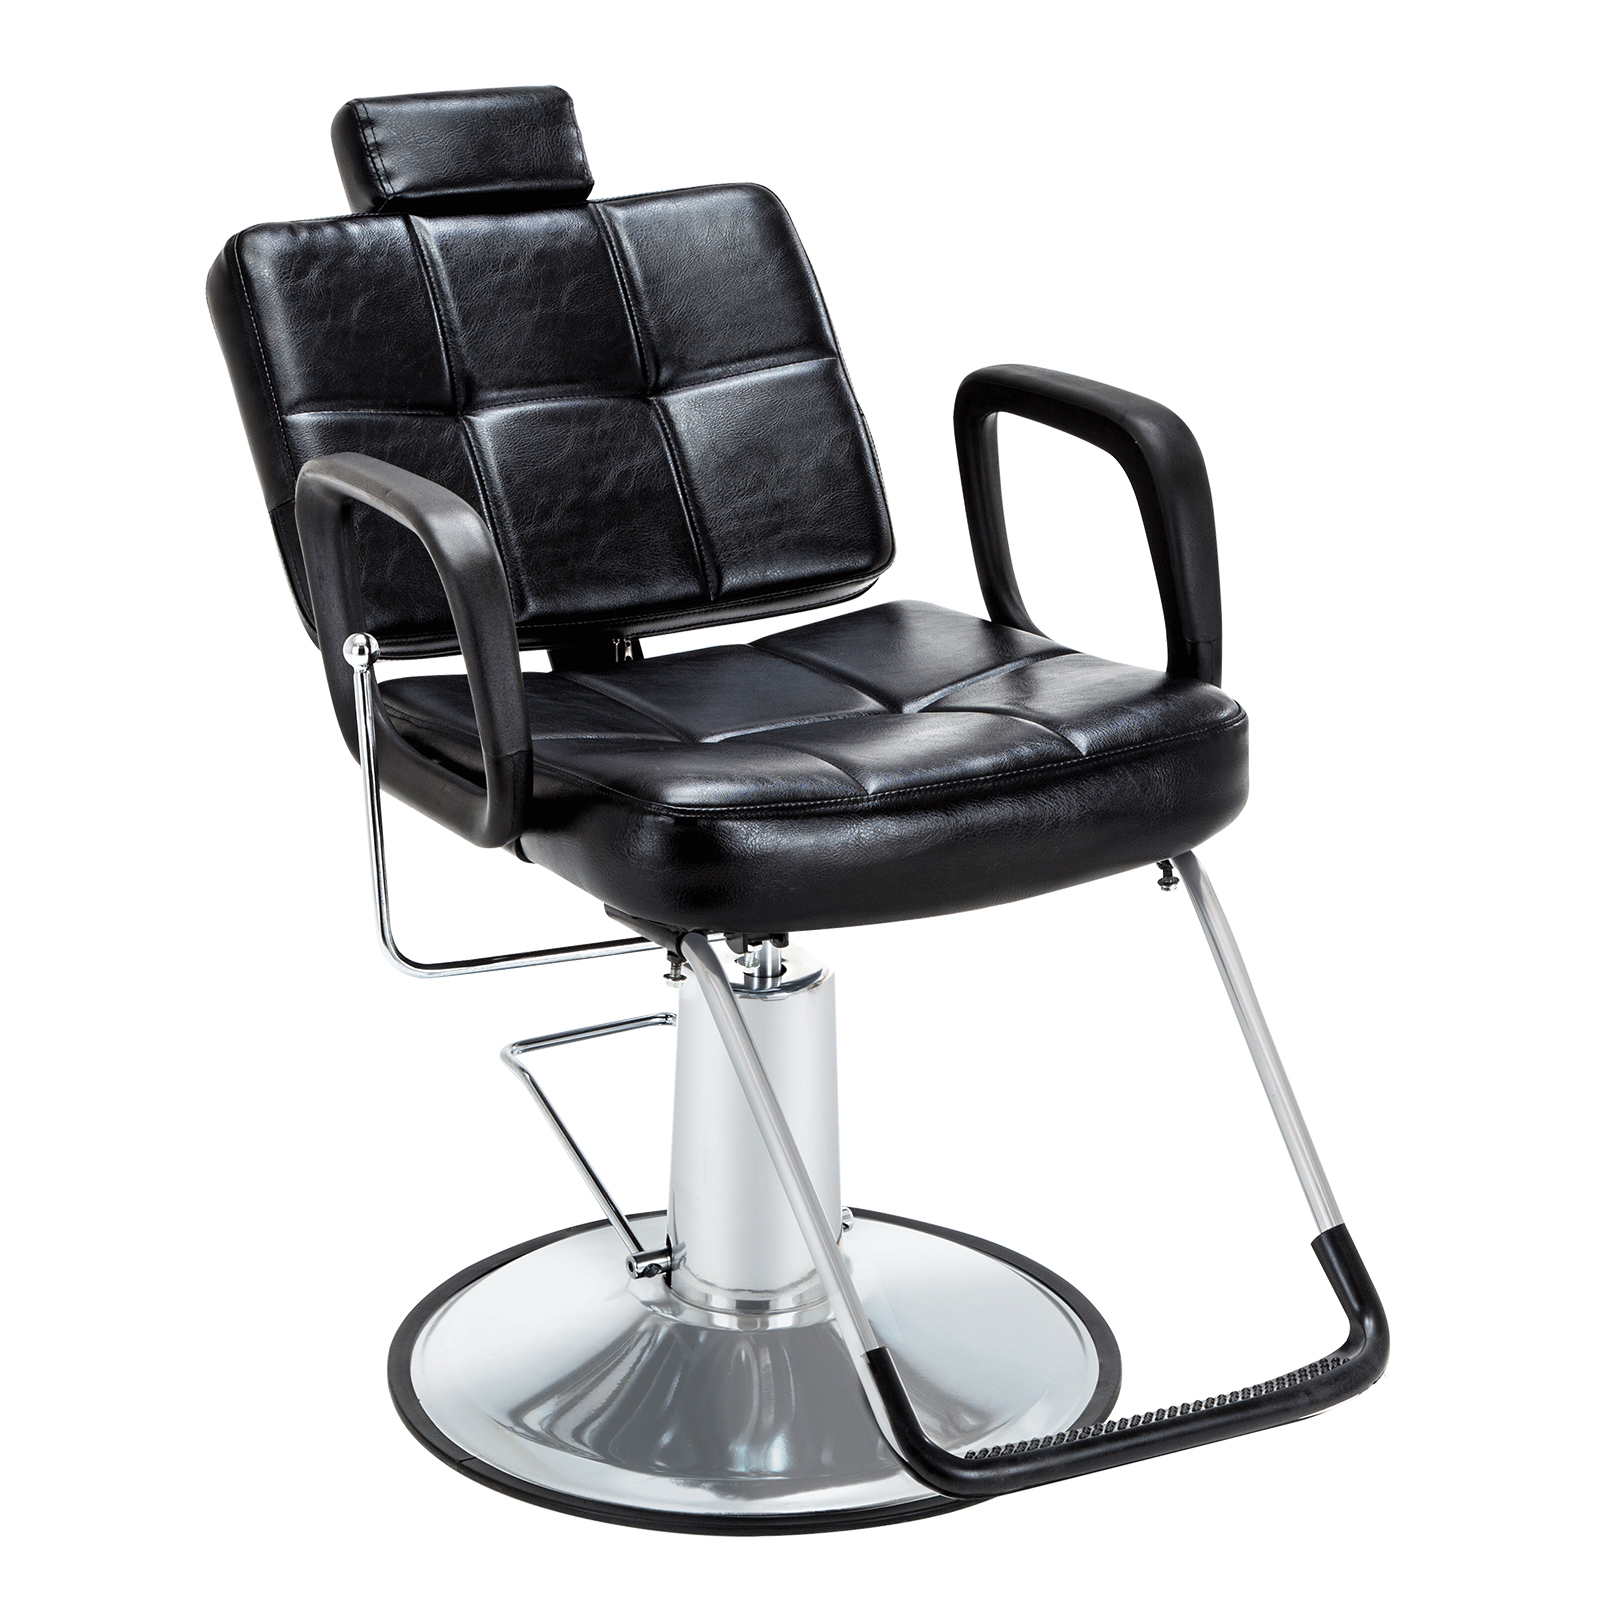 Brilliant Details About 3600Swivel Barber Chair Hydraulic Pump Footrest Cover Recliners Salon Equipment Gmtry Best Dining Table And Chair Ideas Images Gmtryco